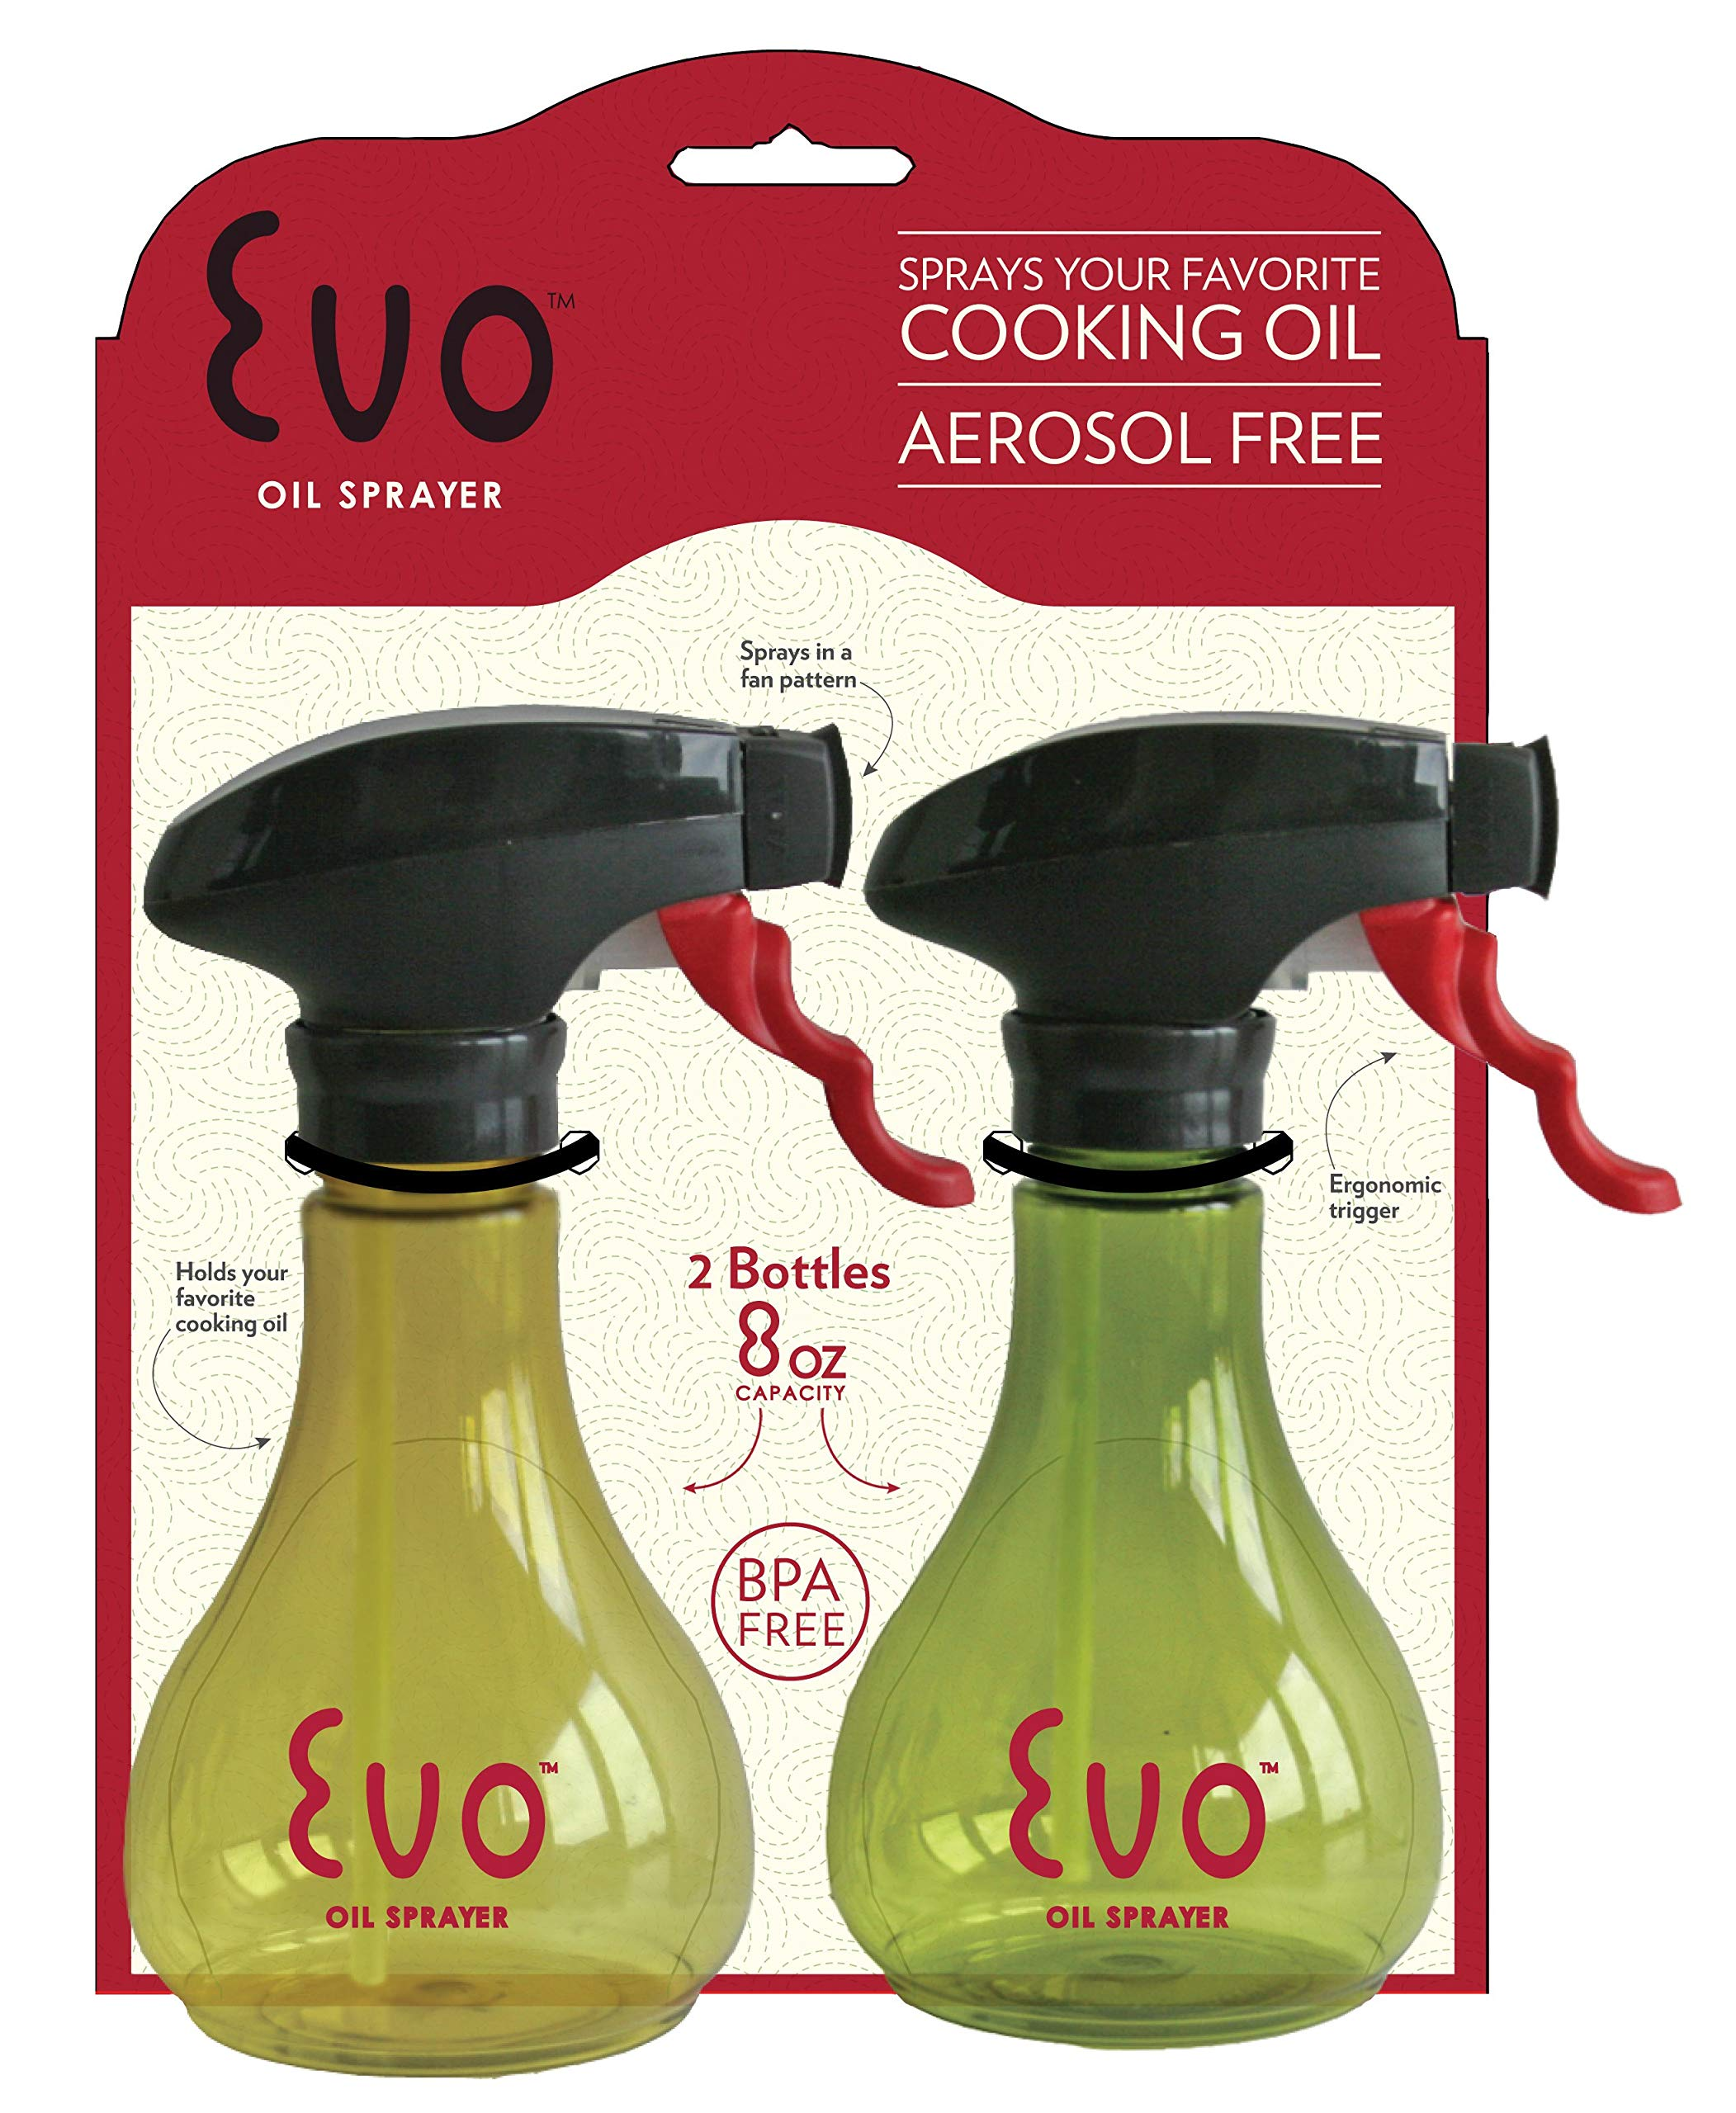 Evo Oil Sprayer Bottle, Non-Aerosol for Olive Oil and Cooking Oils, 8-ounce Capacity, Set of 2 by Evo Oil Sprayer